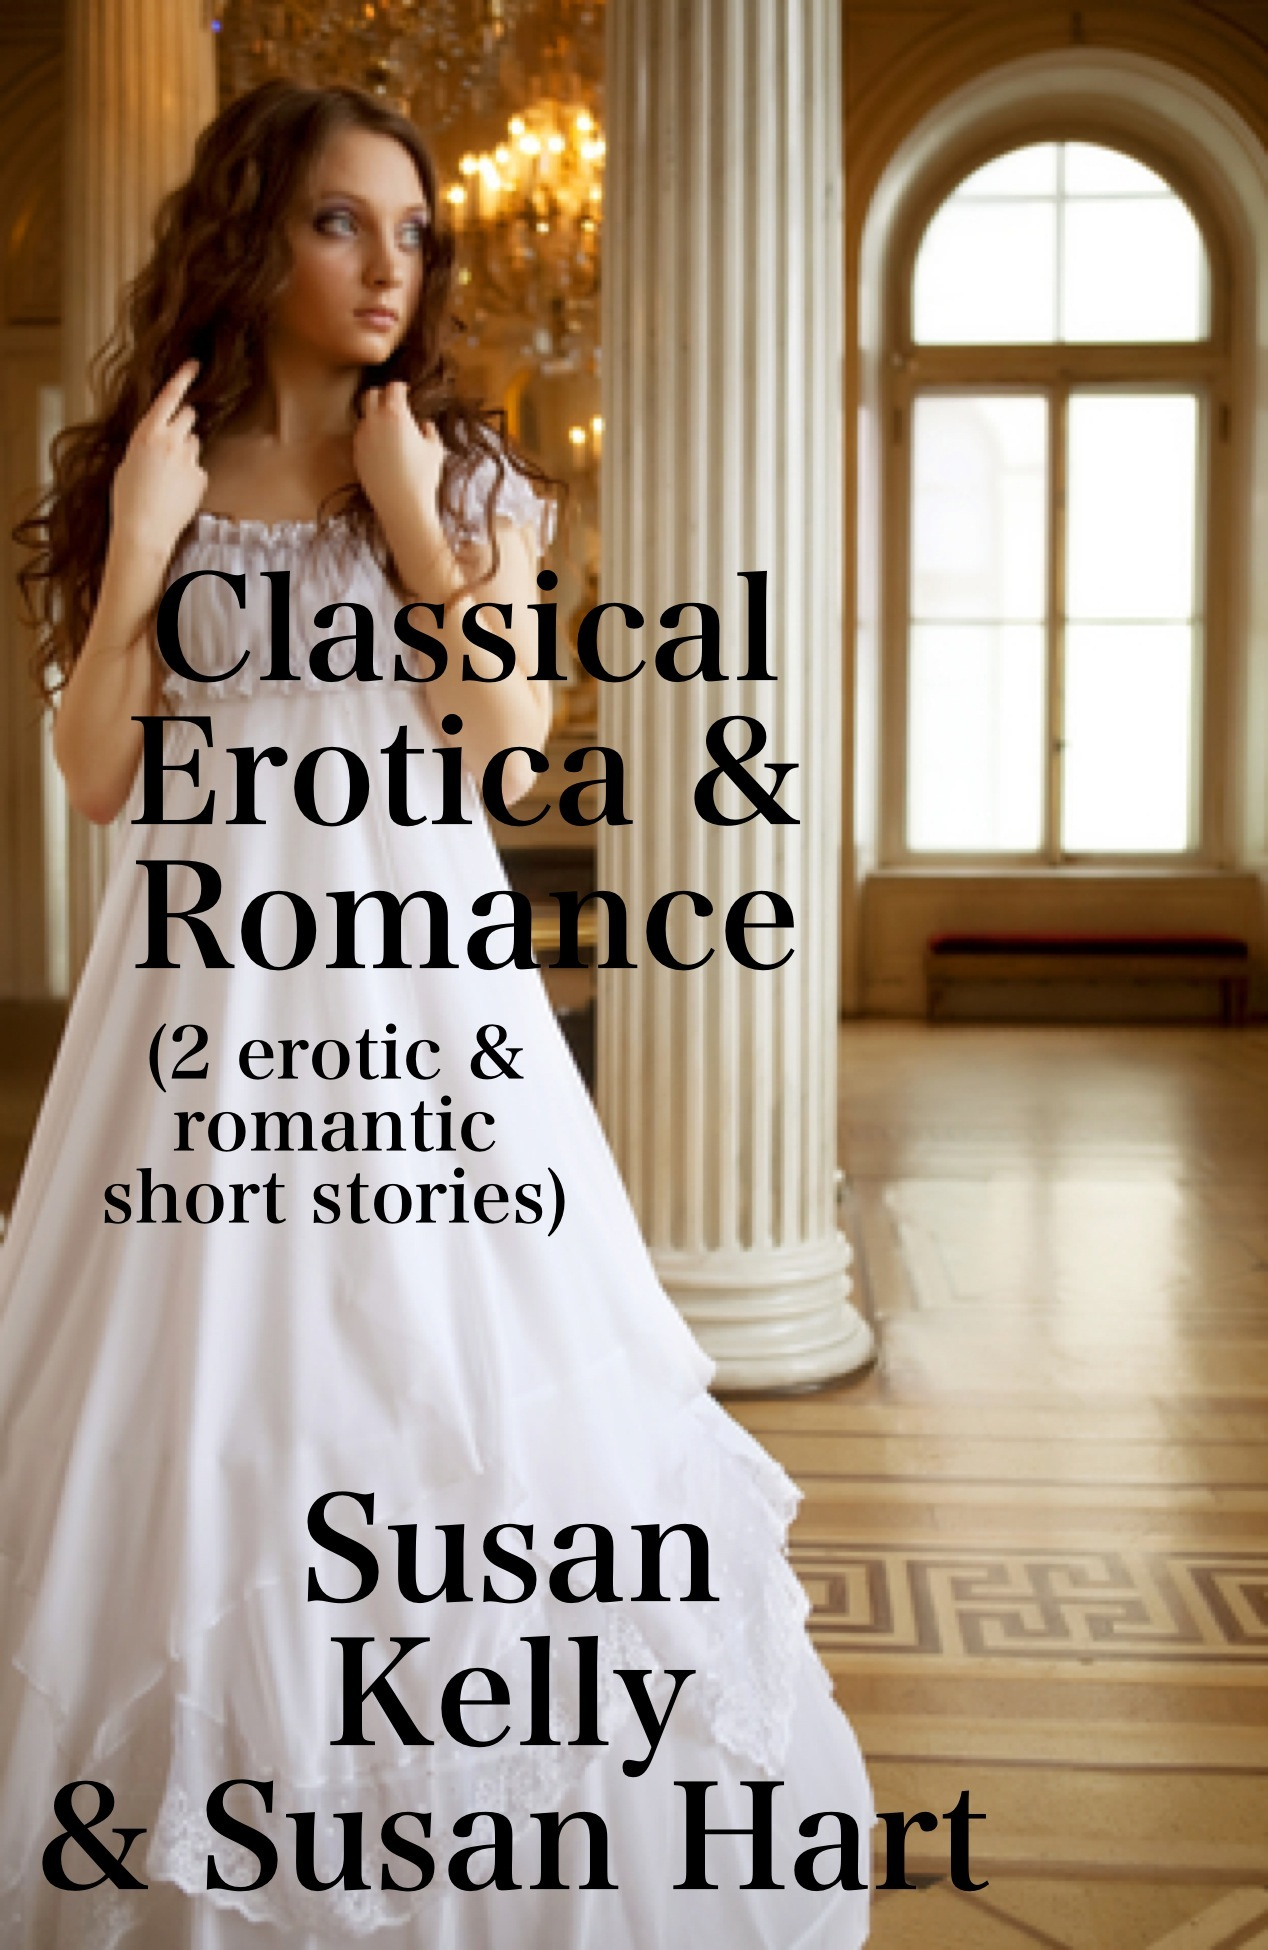 Classical Erotic & Romance (2 erotic & romantic short stories)